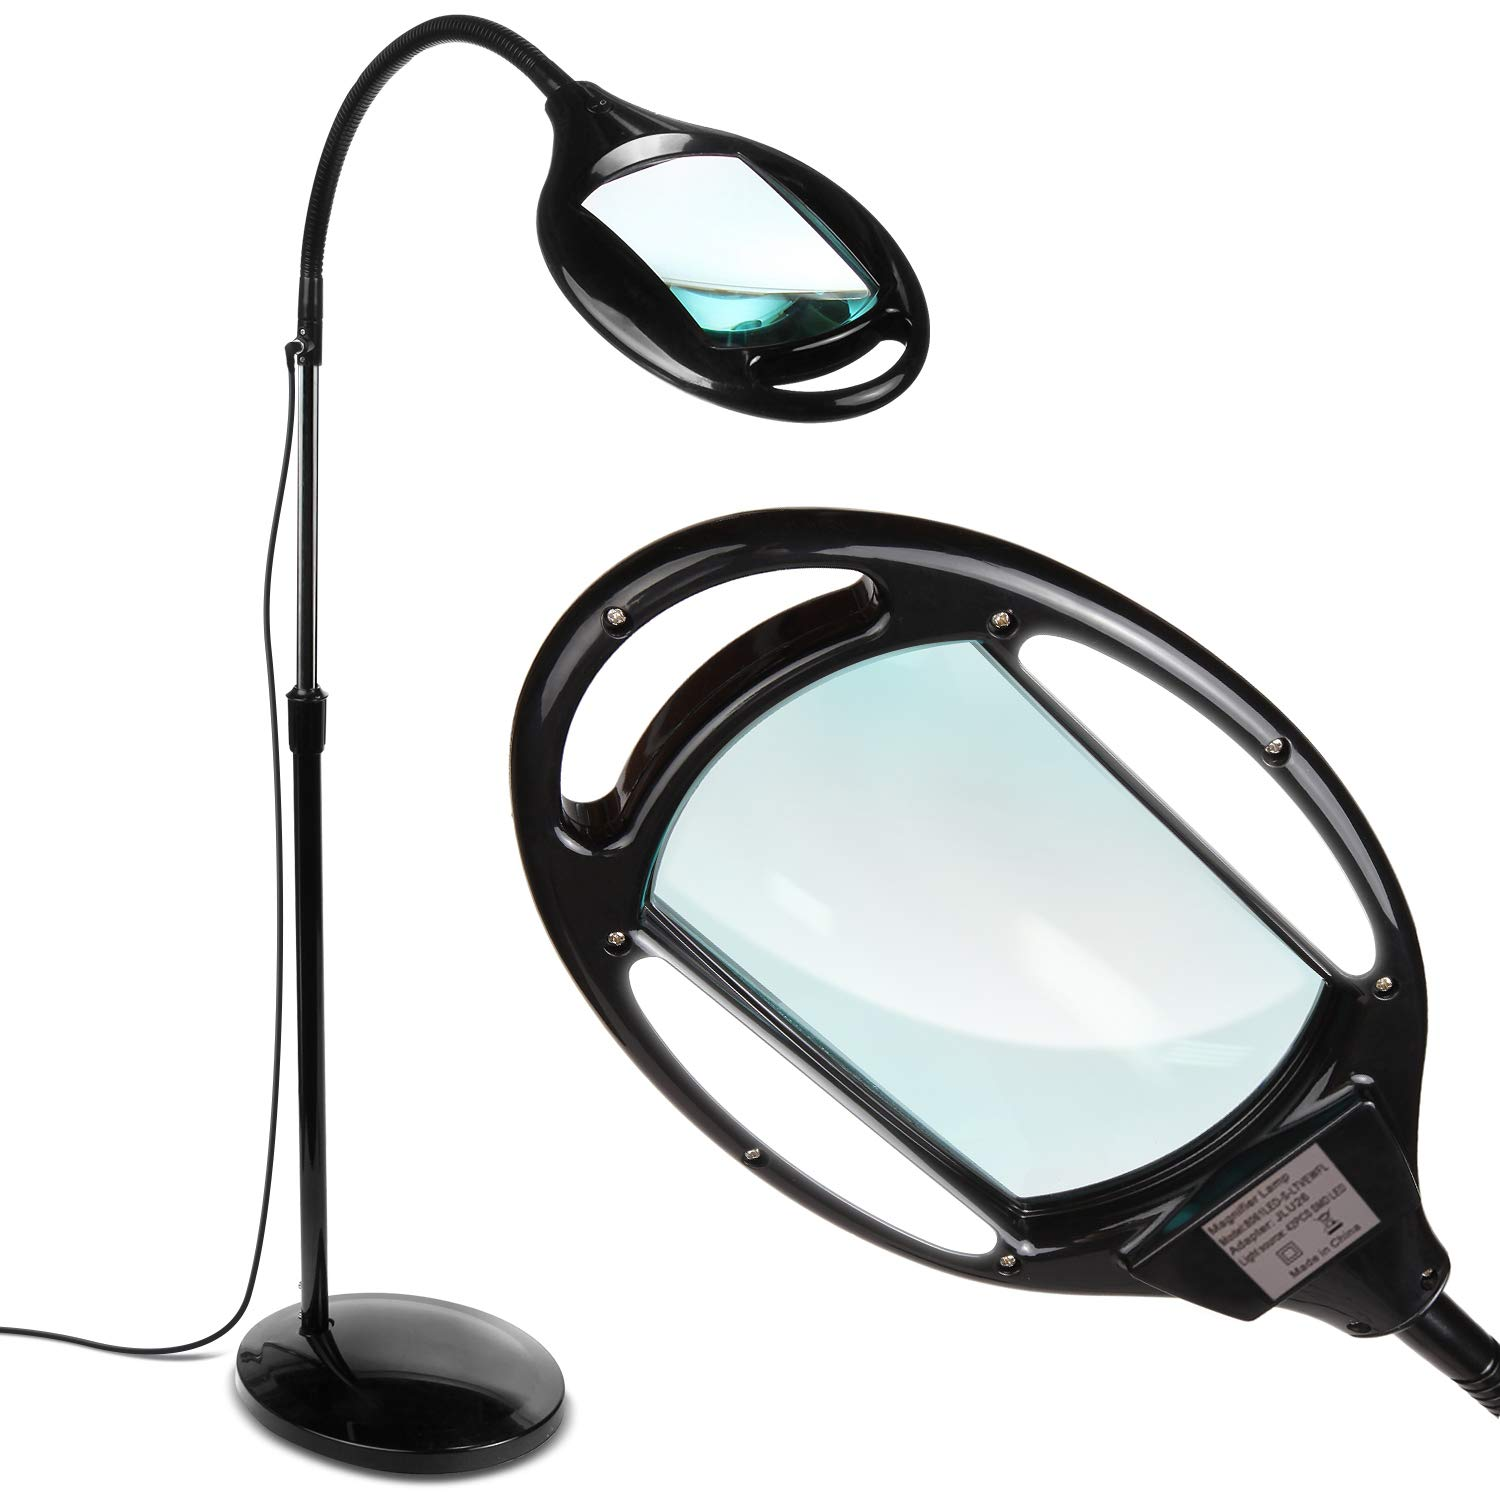 Brightech LightView Pro LED Magnifying Floor Lamp - Daylight Bright Full Spectrum Magnifier Lighted Glass Lens - Height Adjustable Gooseneck Standing Light - For Reading Task Craft Lighting - Black by Brightech